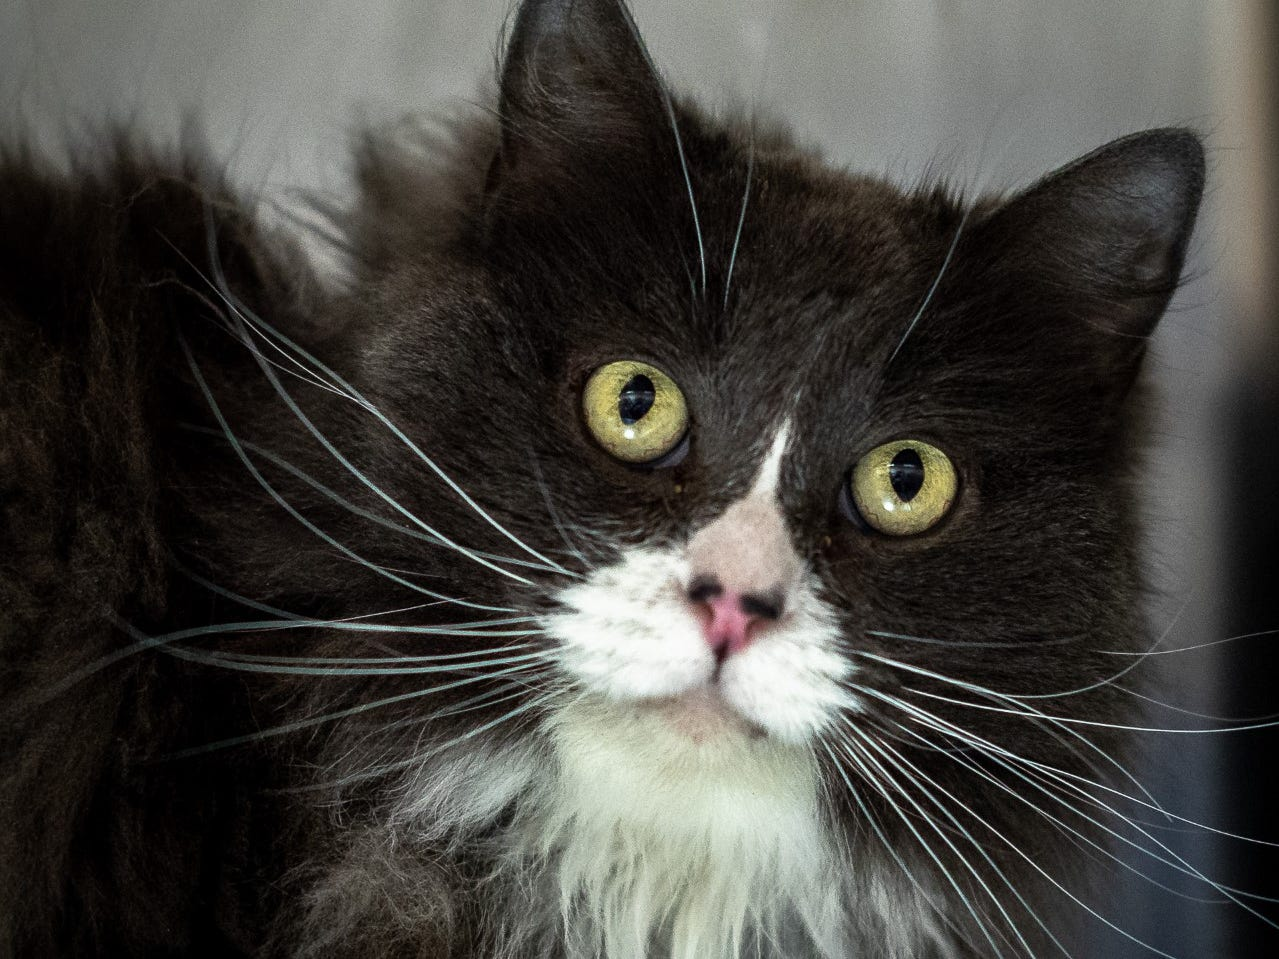 Lilac - Female (spayed) domestic medium hair, about 2 years old. Intake date:1/14/2019